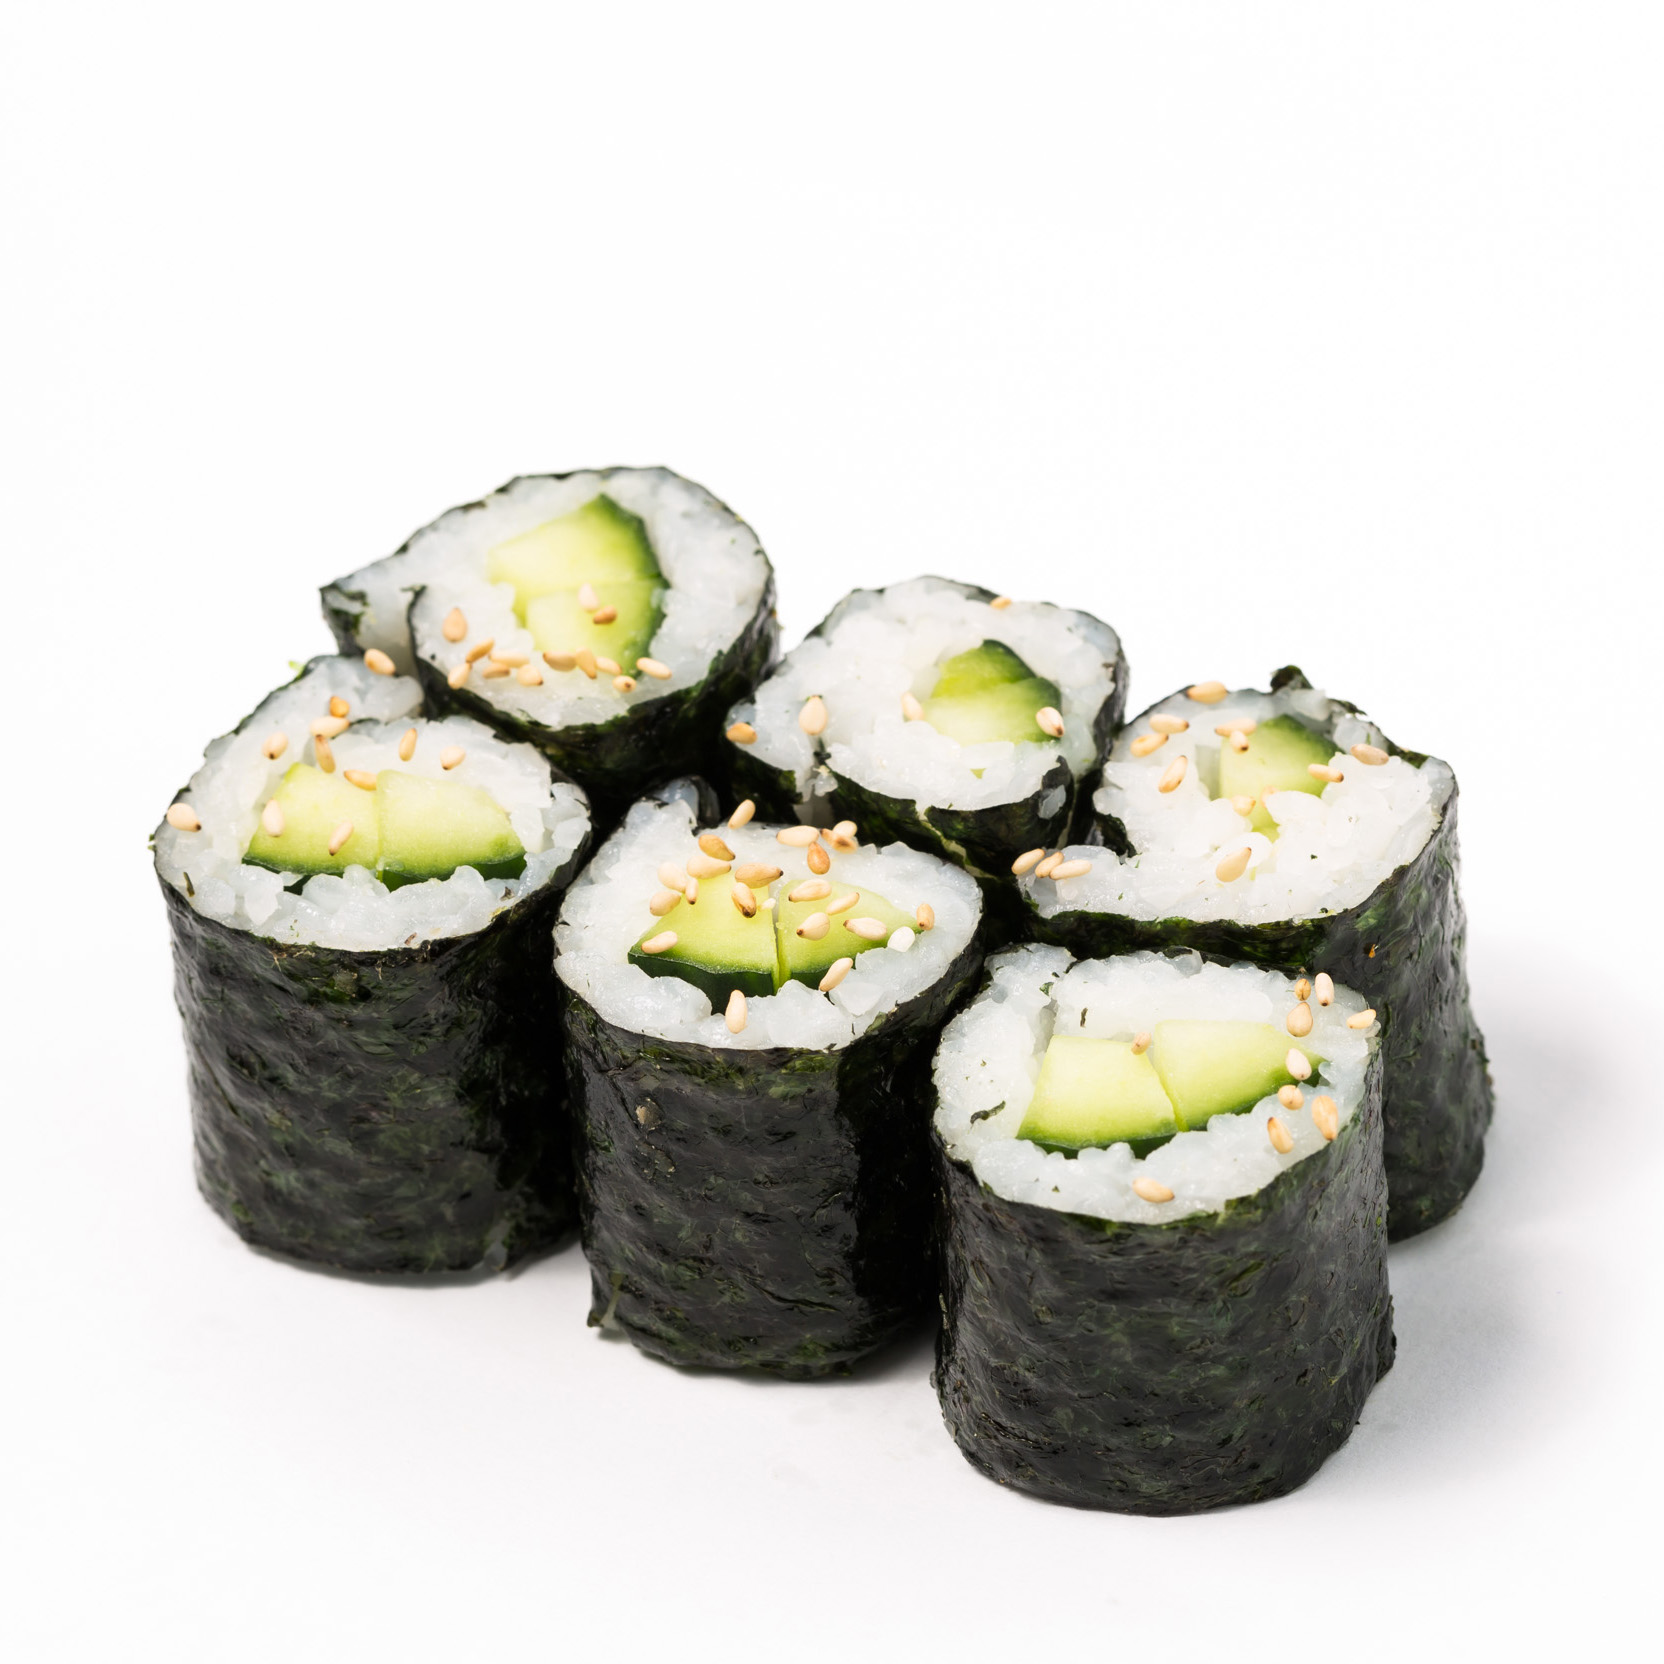 Cucumber Small Roll - Vege